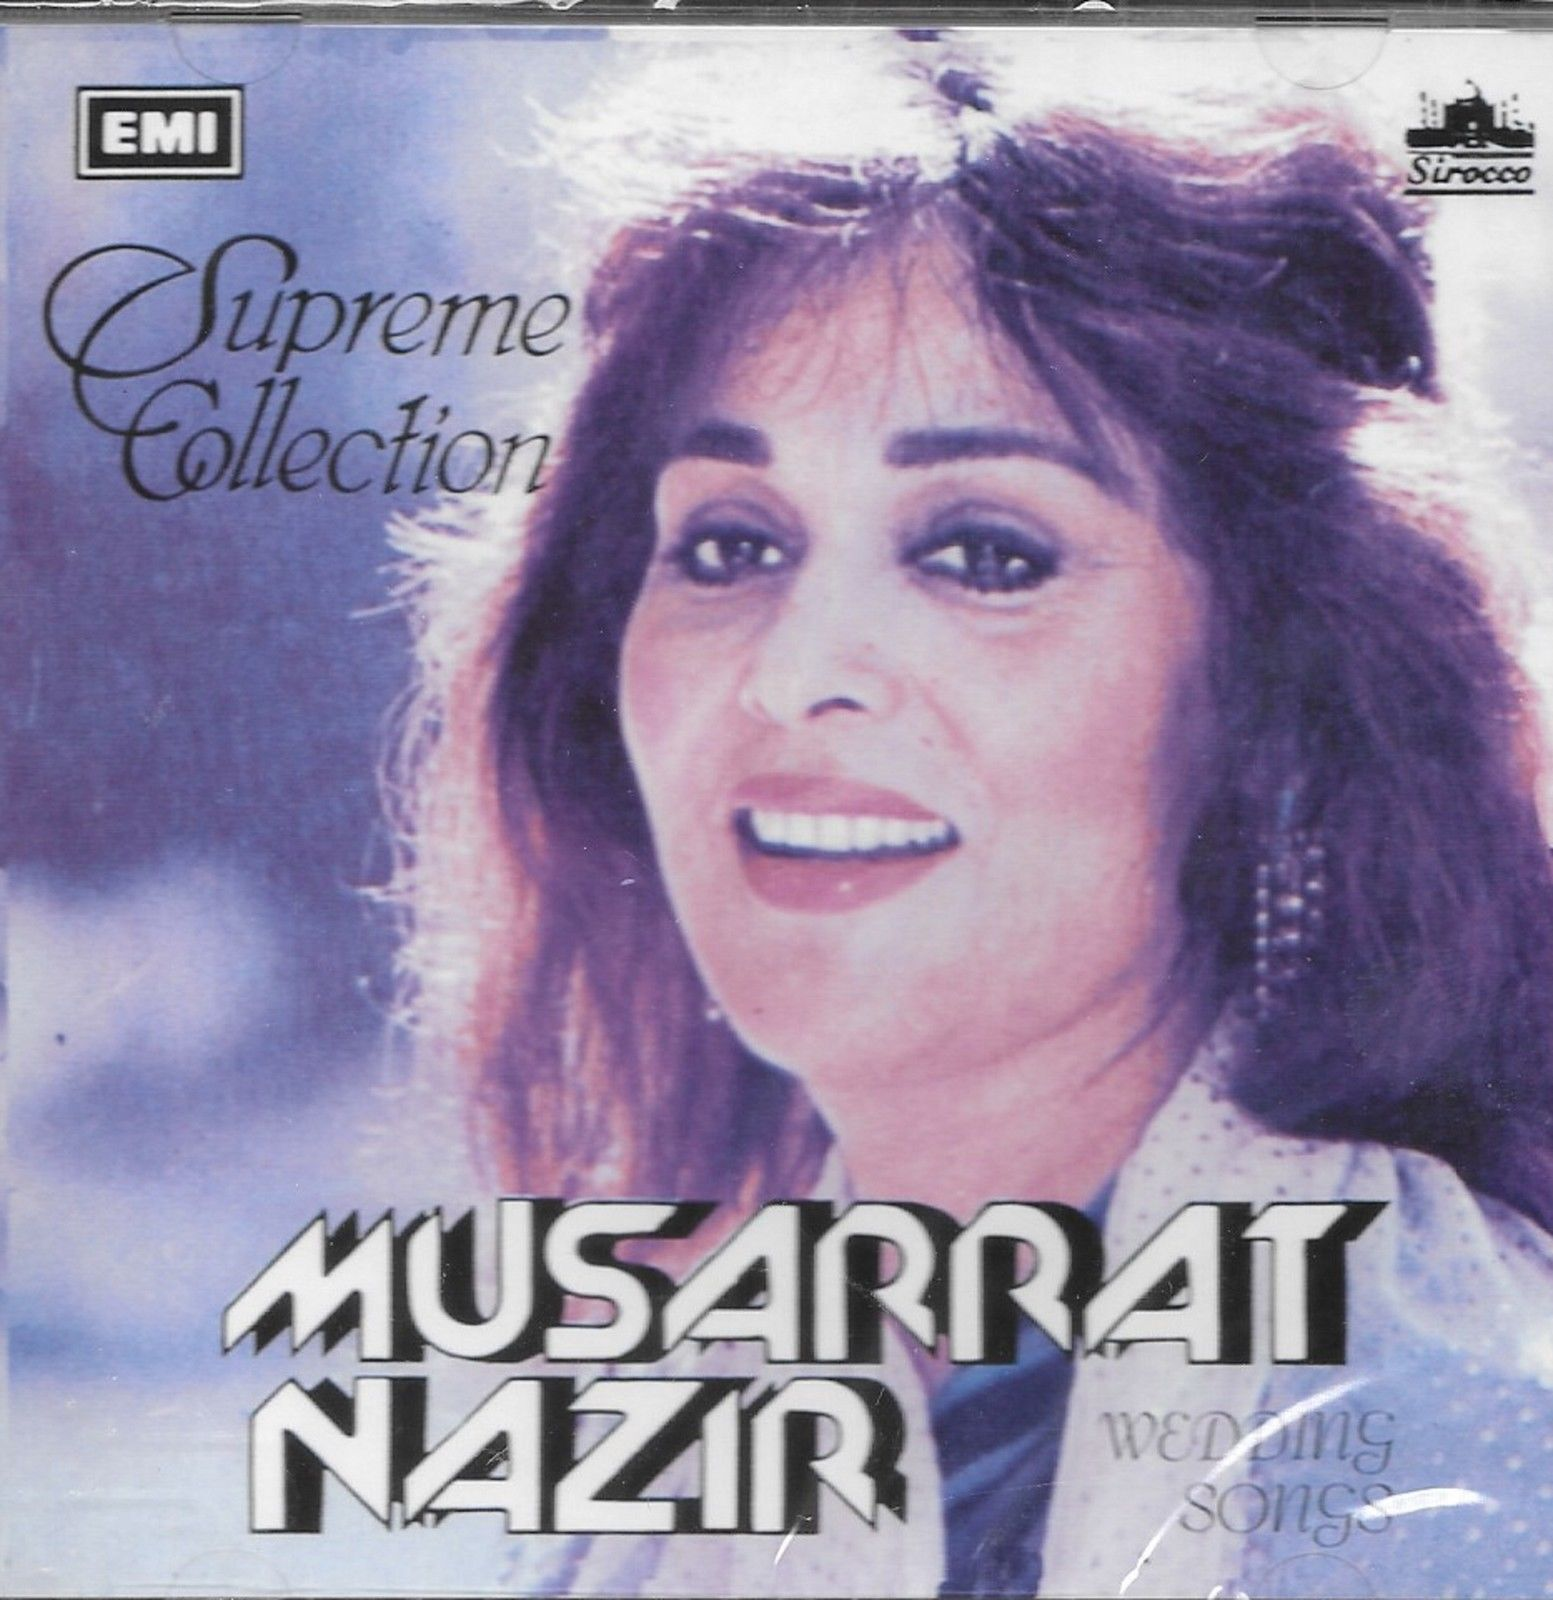 Communication on this topic: Carroll Baker, musarrat-nazir/